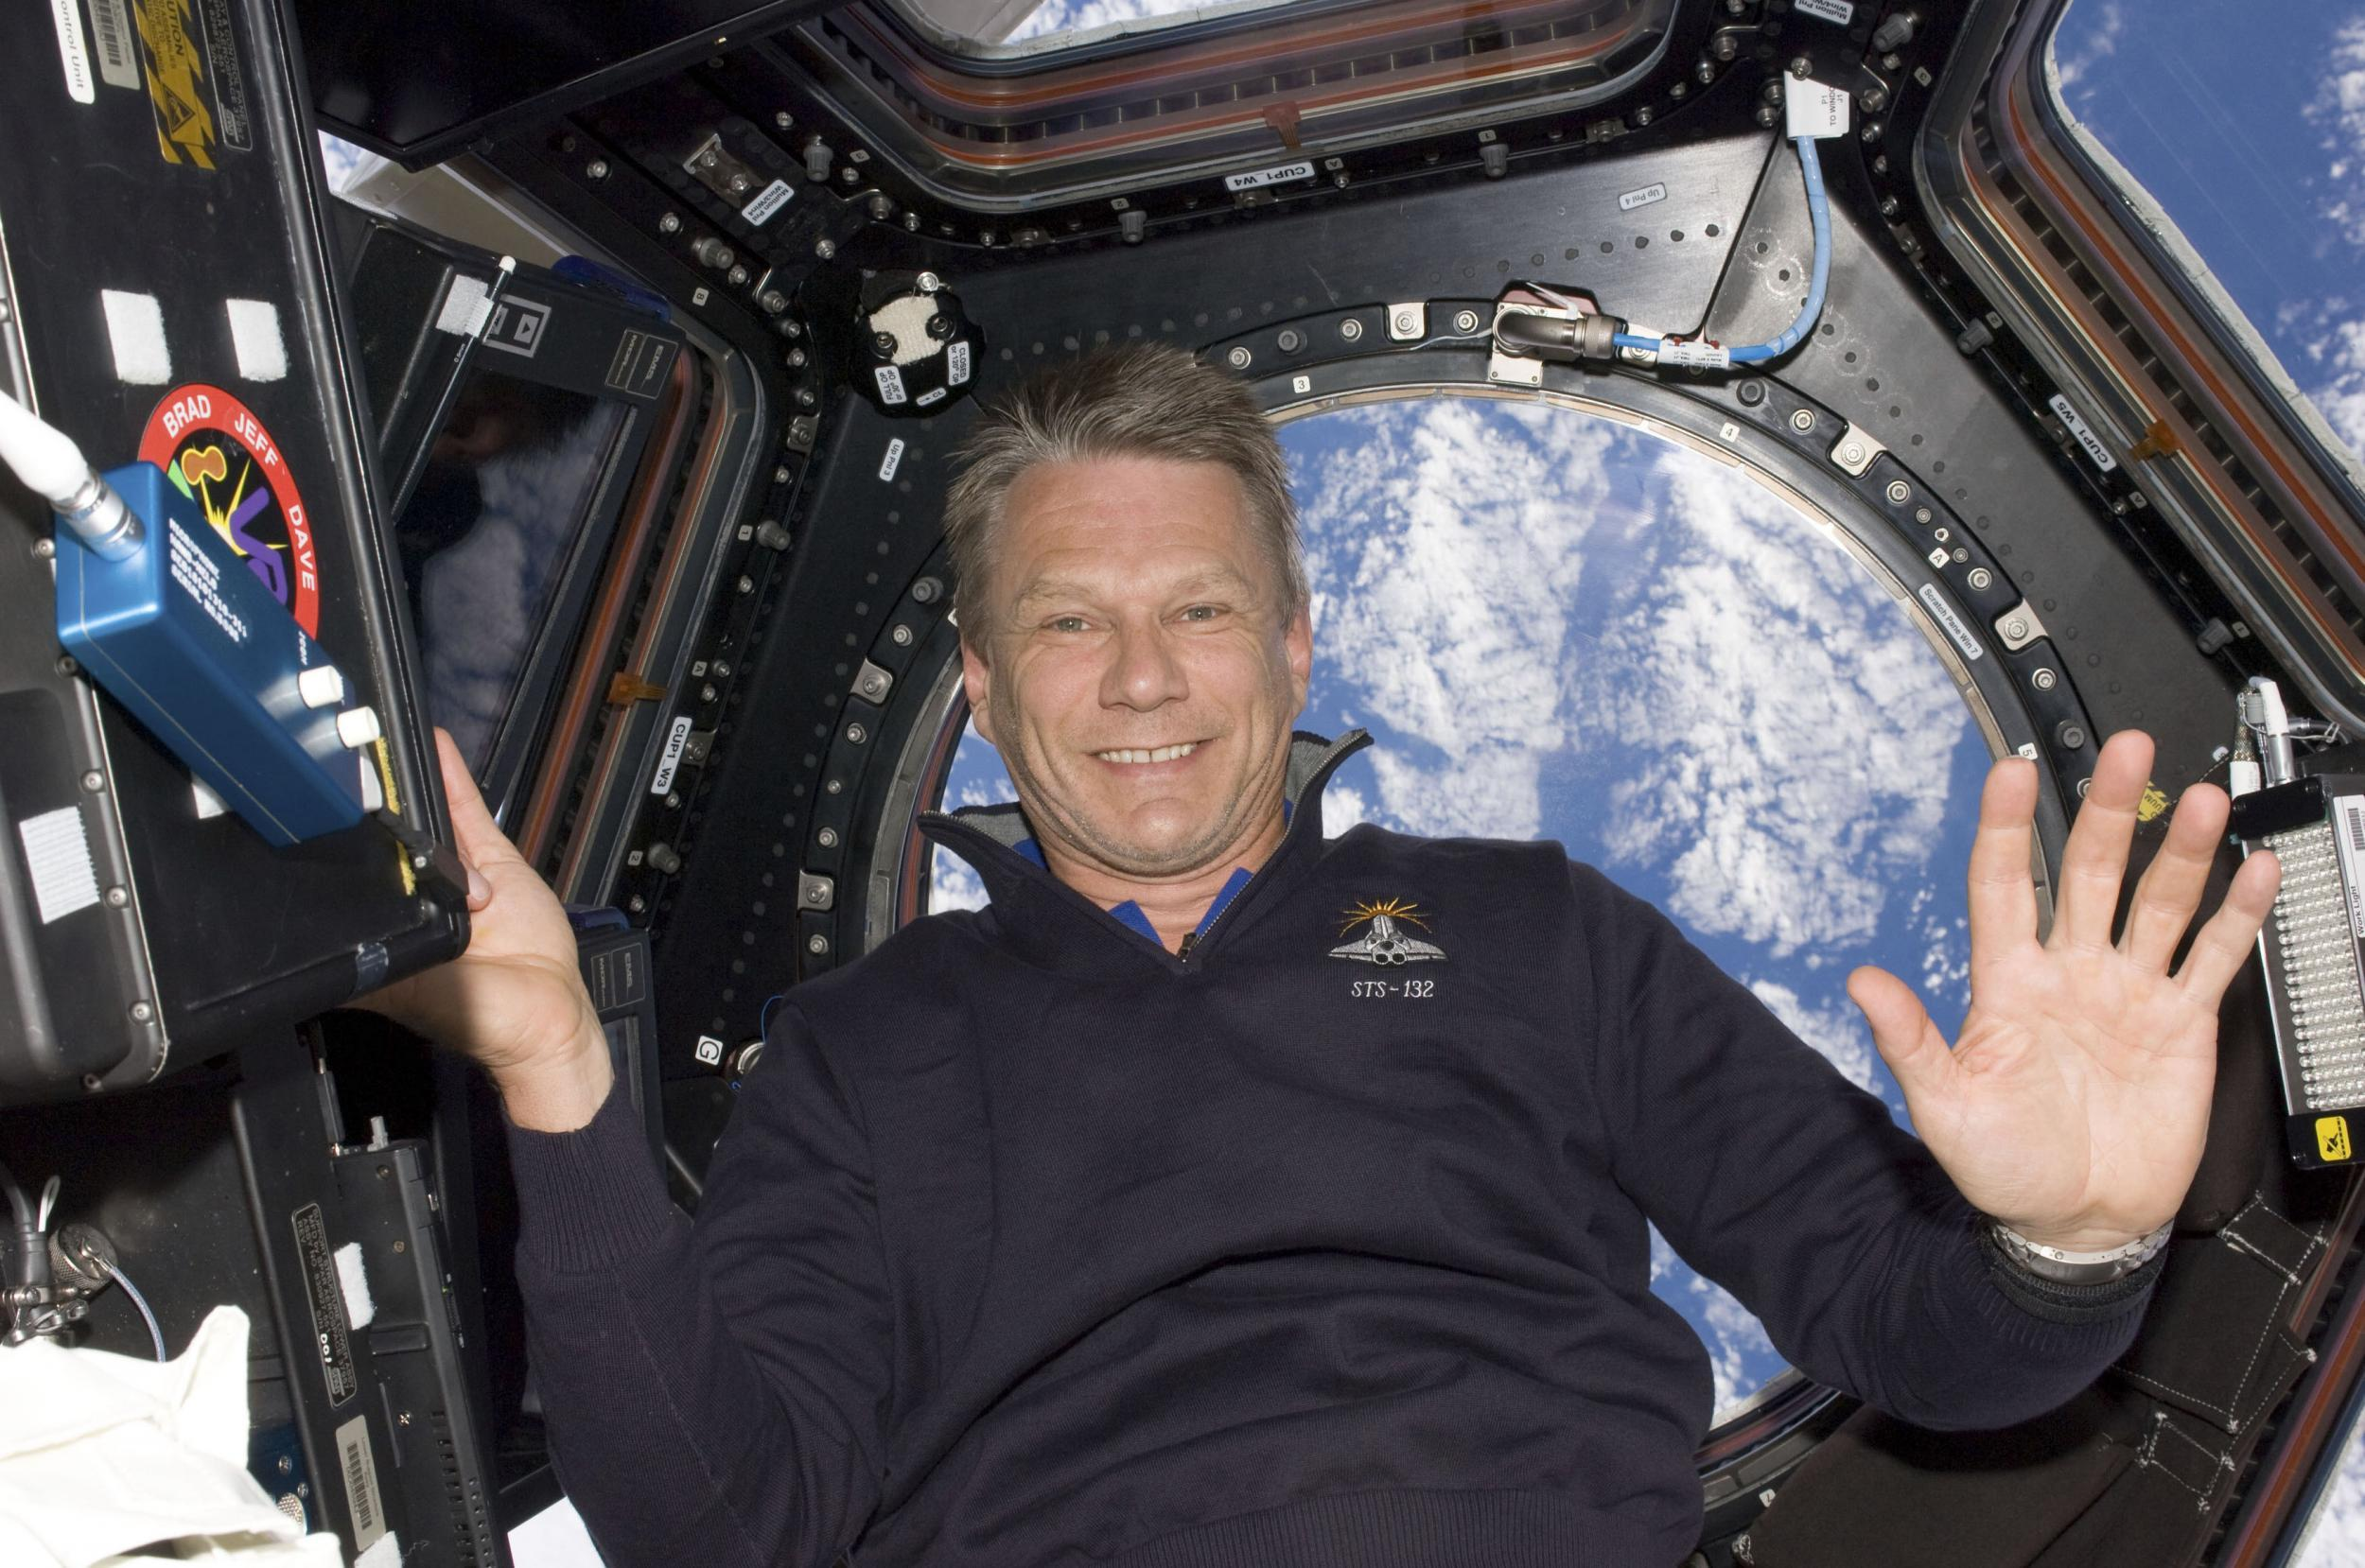 British astronaut Piers Sellers s at months after cancer